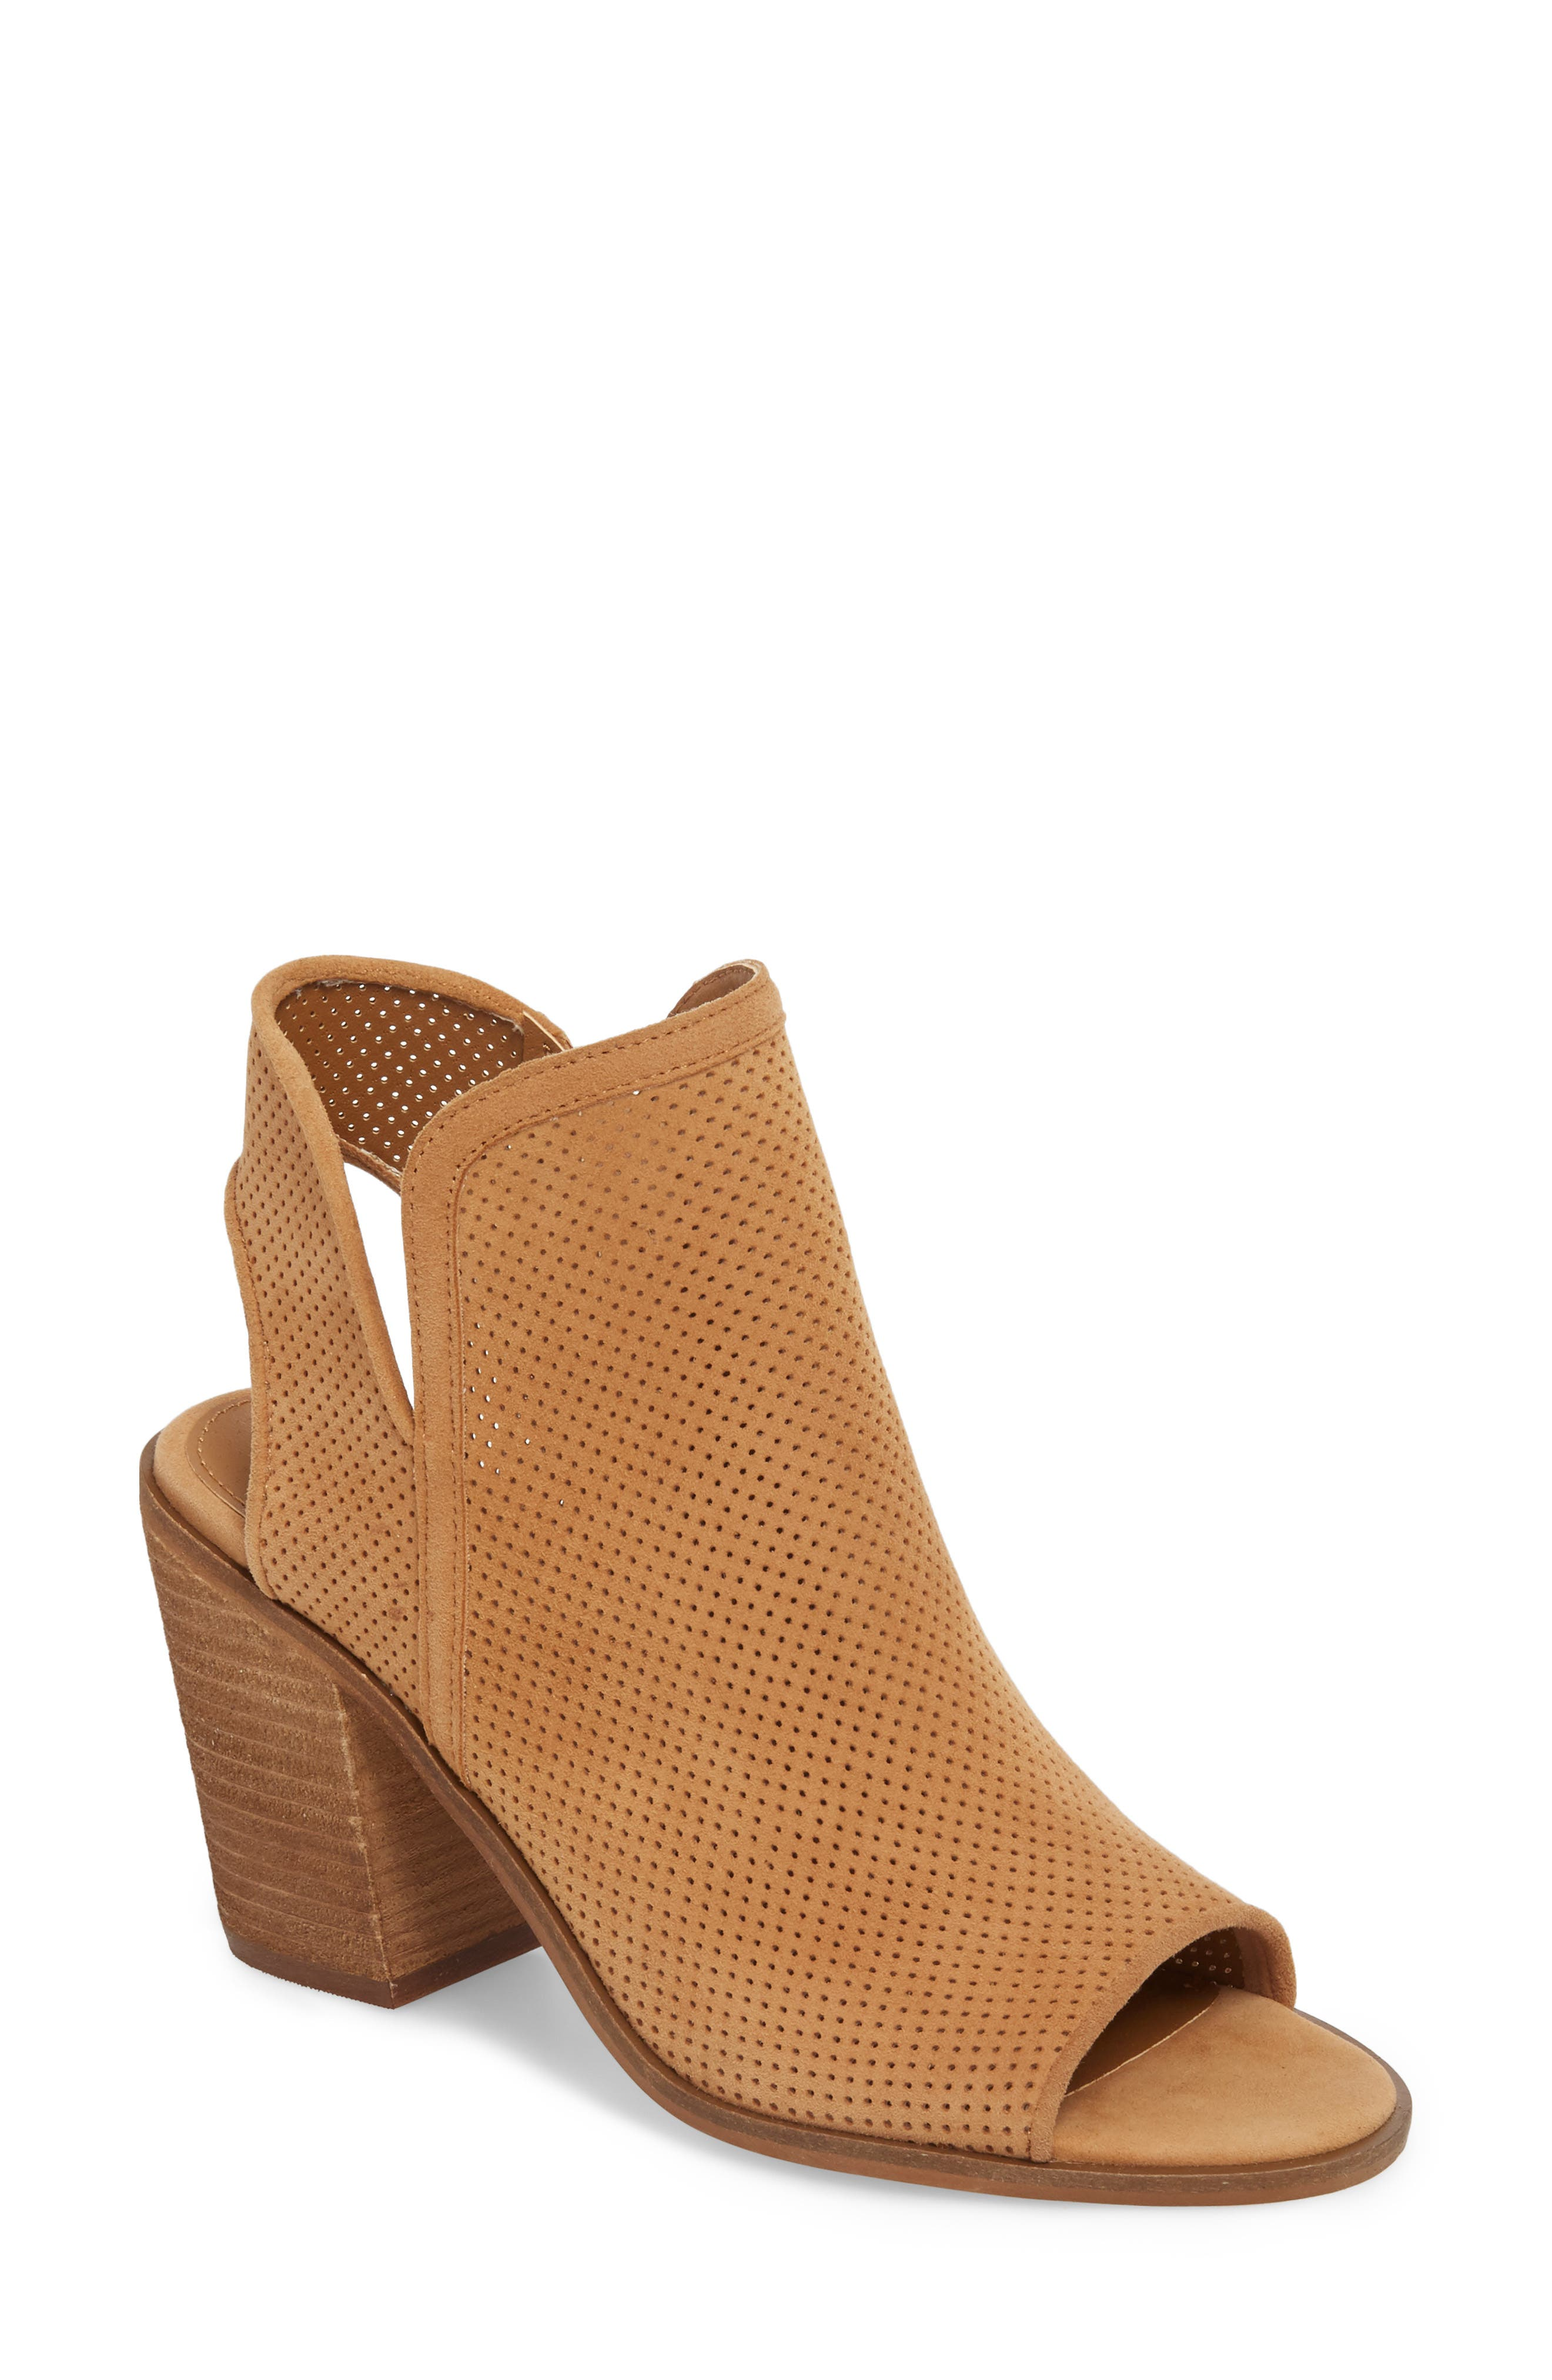 Maxine Perforated Bootie,                             Main thumbnail 1, color,                             Cognac Suede